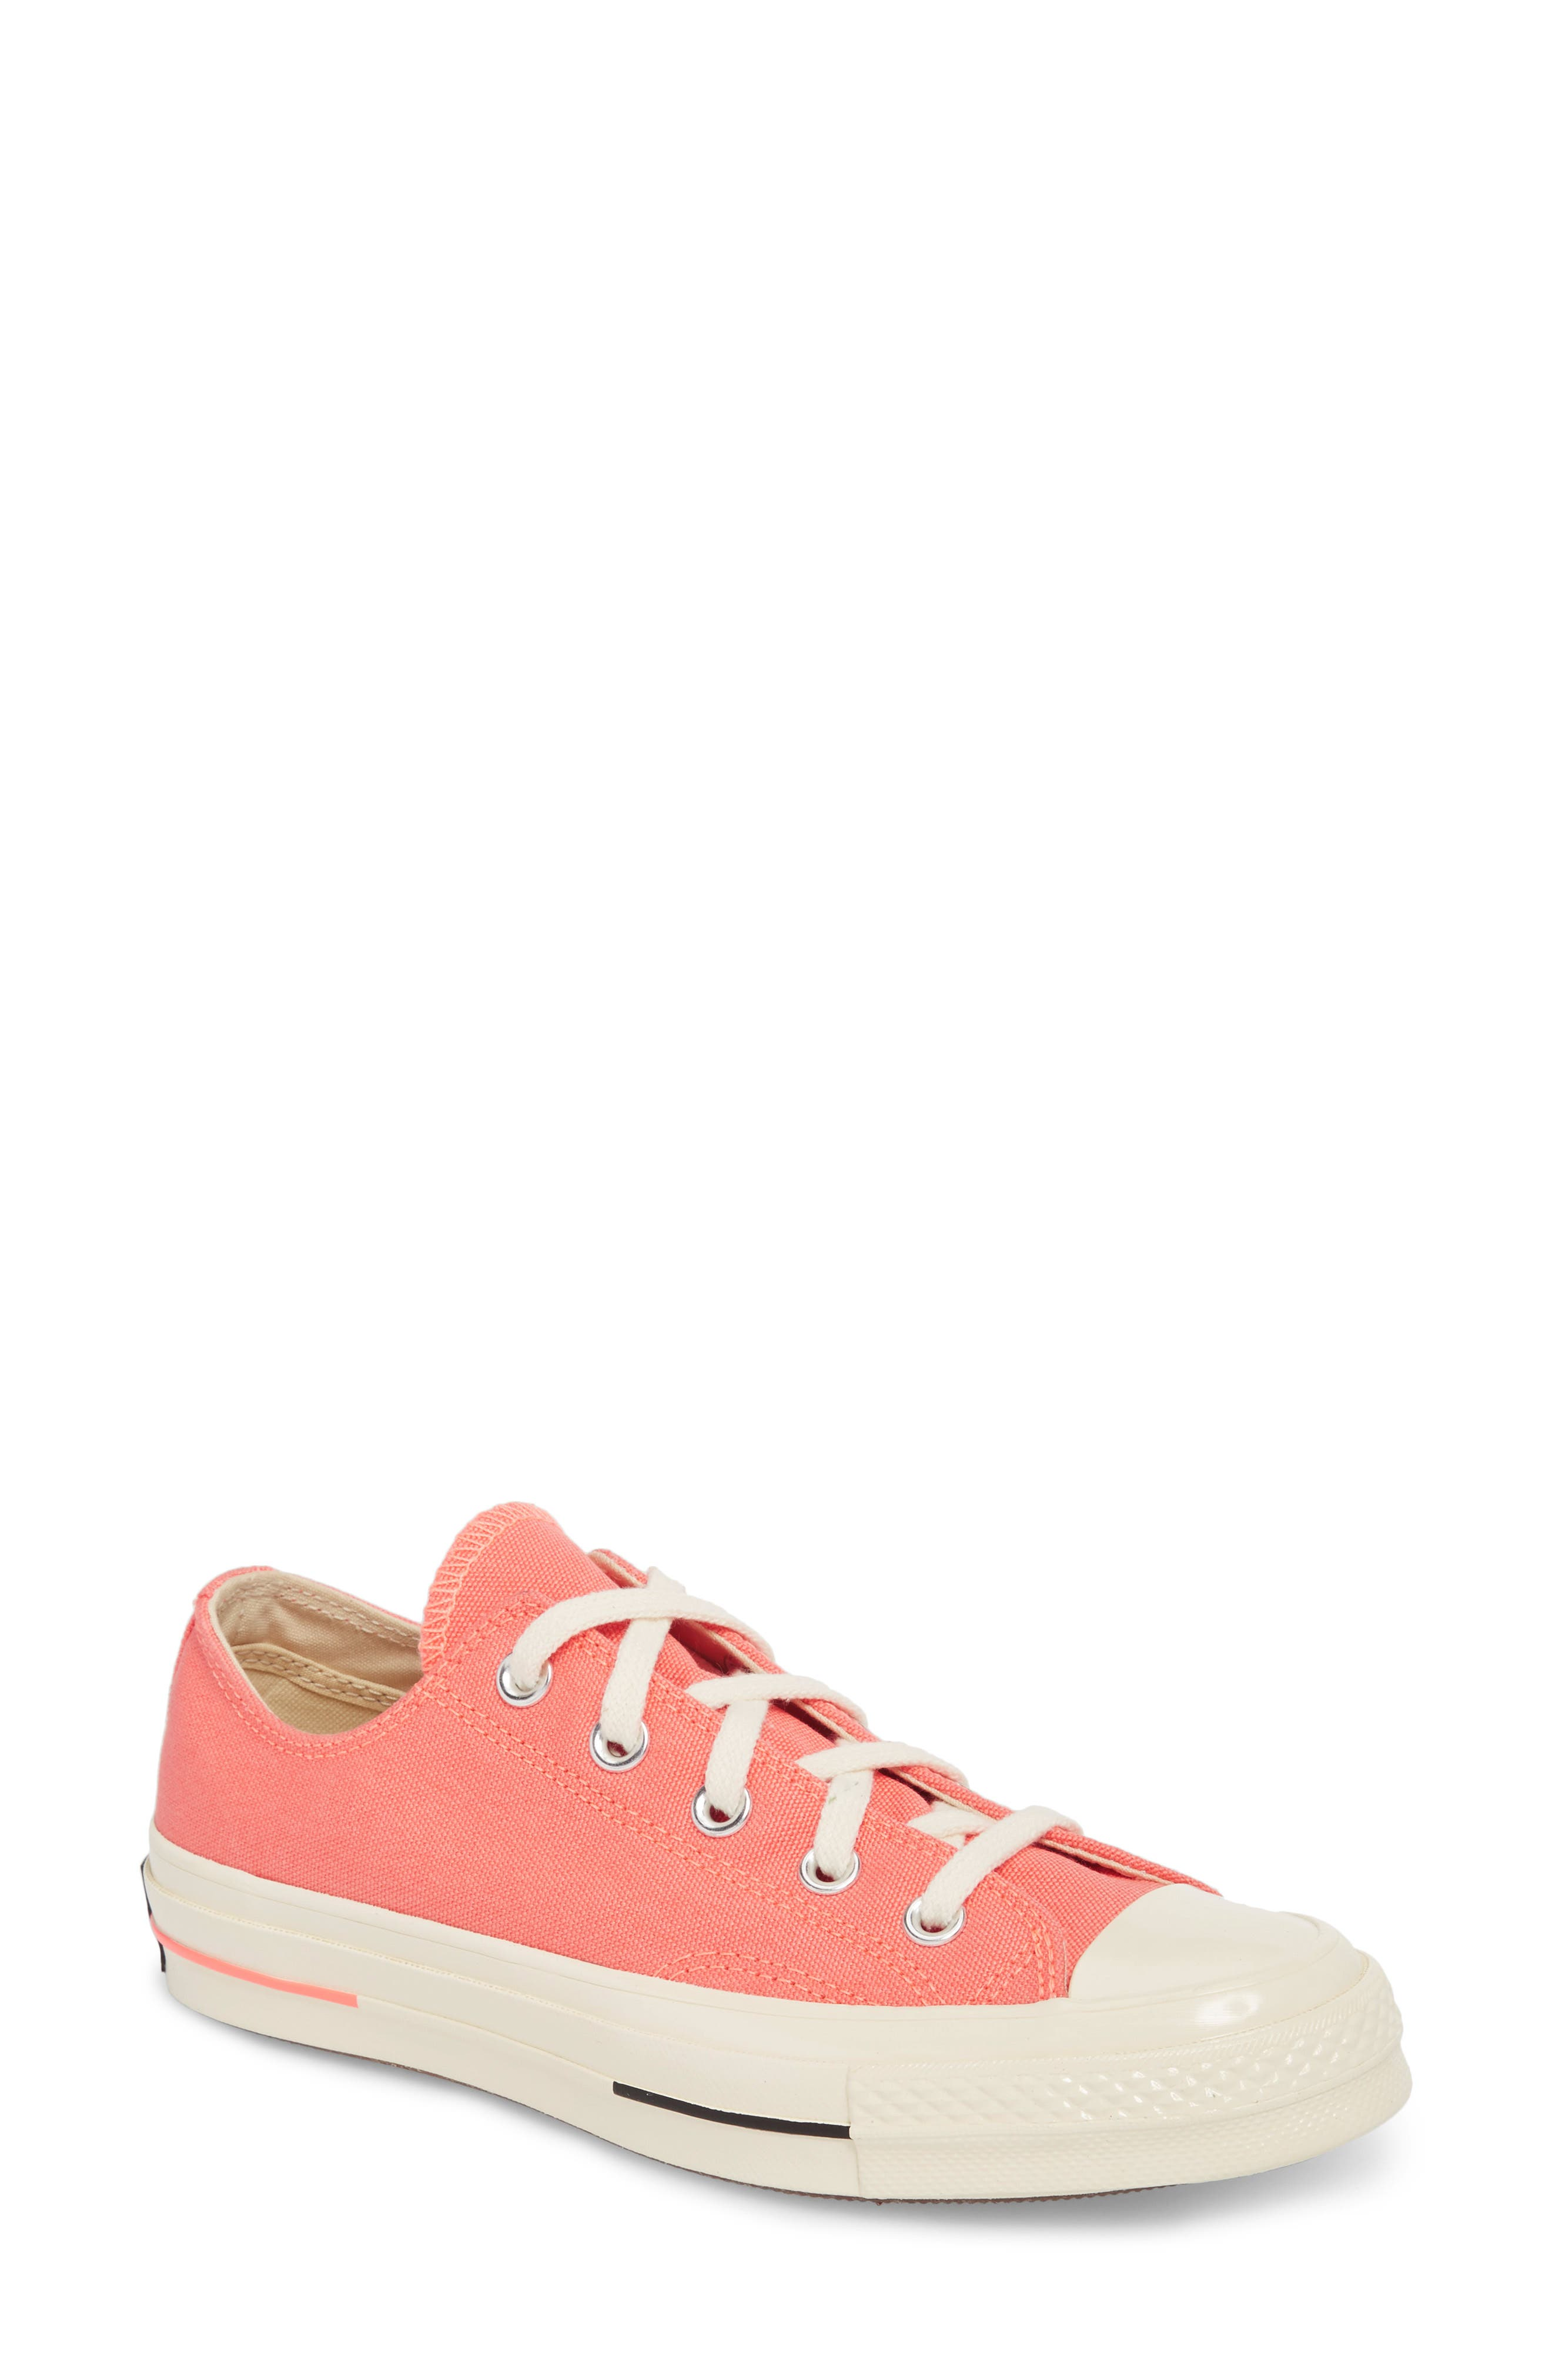 Alternate Image 1 Selected - Converse Chuck Taylor® All Star® '70s Brights Low Top Sneaker (Women)